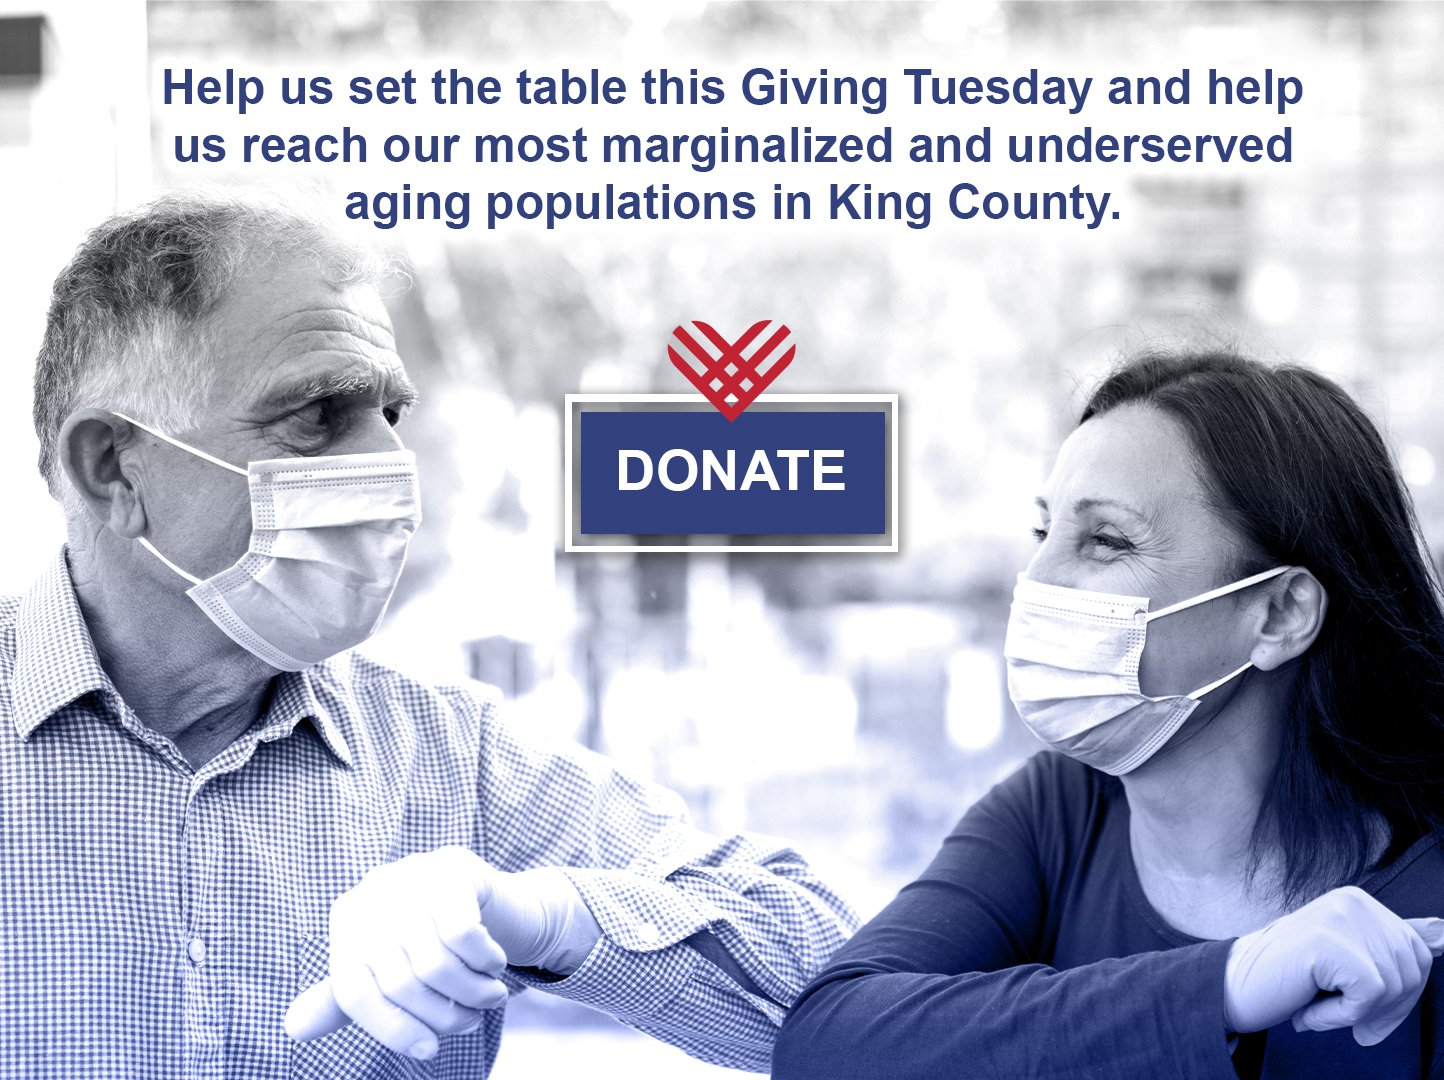 Help us set the table this Giving Tuesday and reach our most marginalized and underserved aging populations in King County. Donate